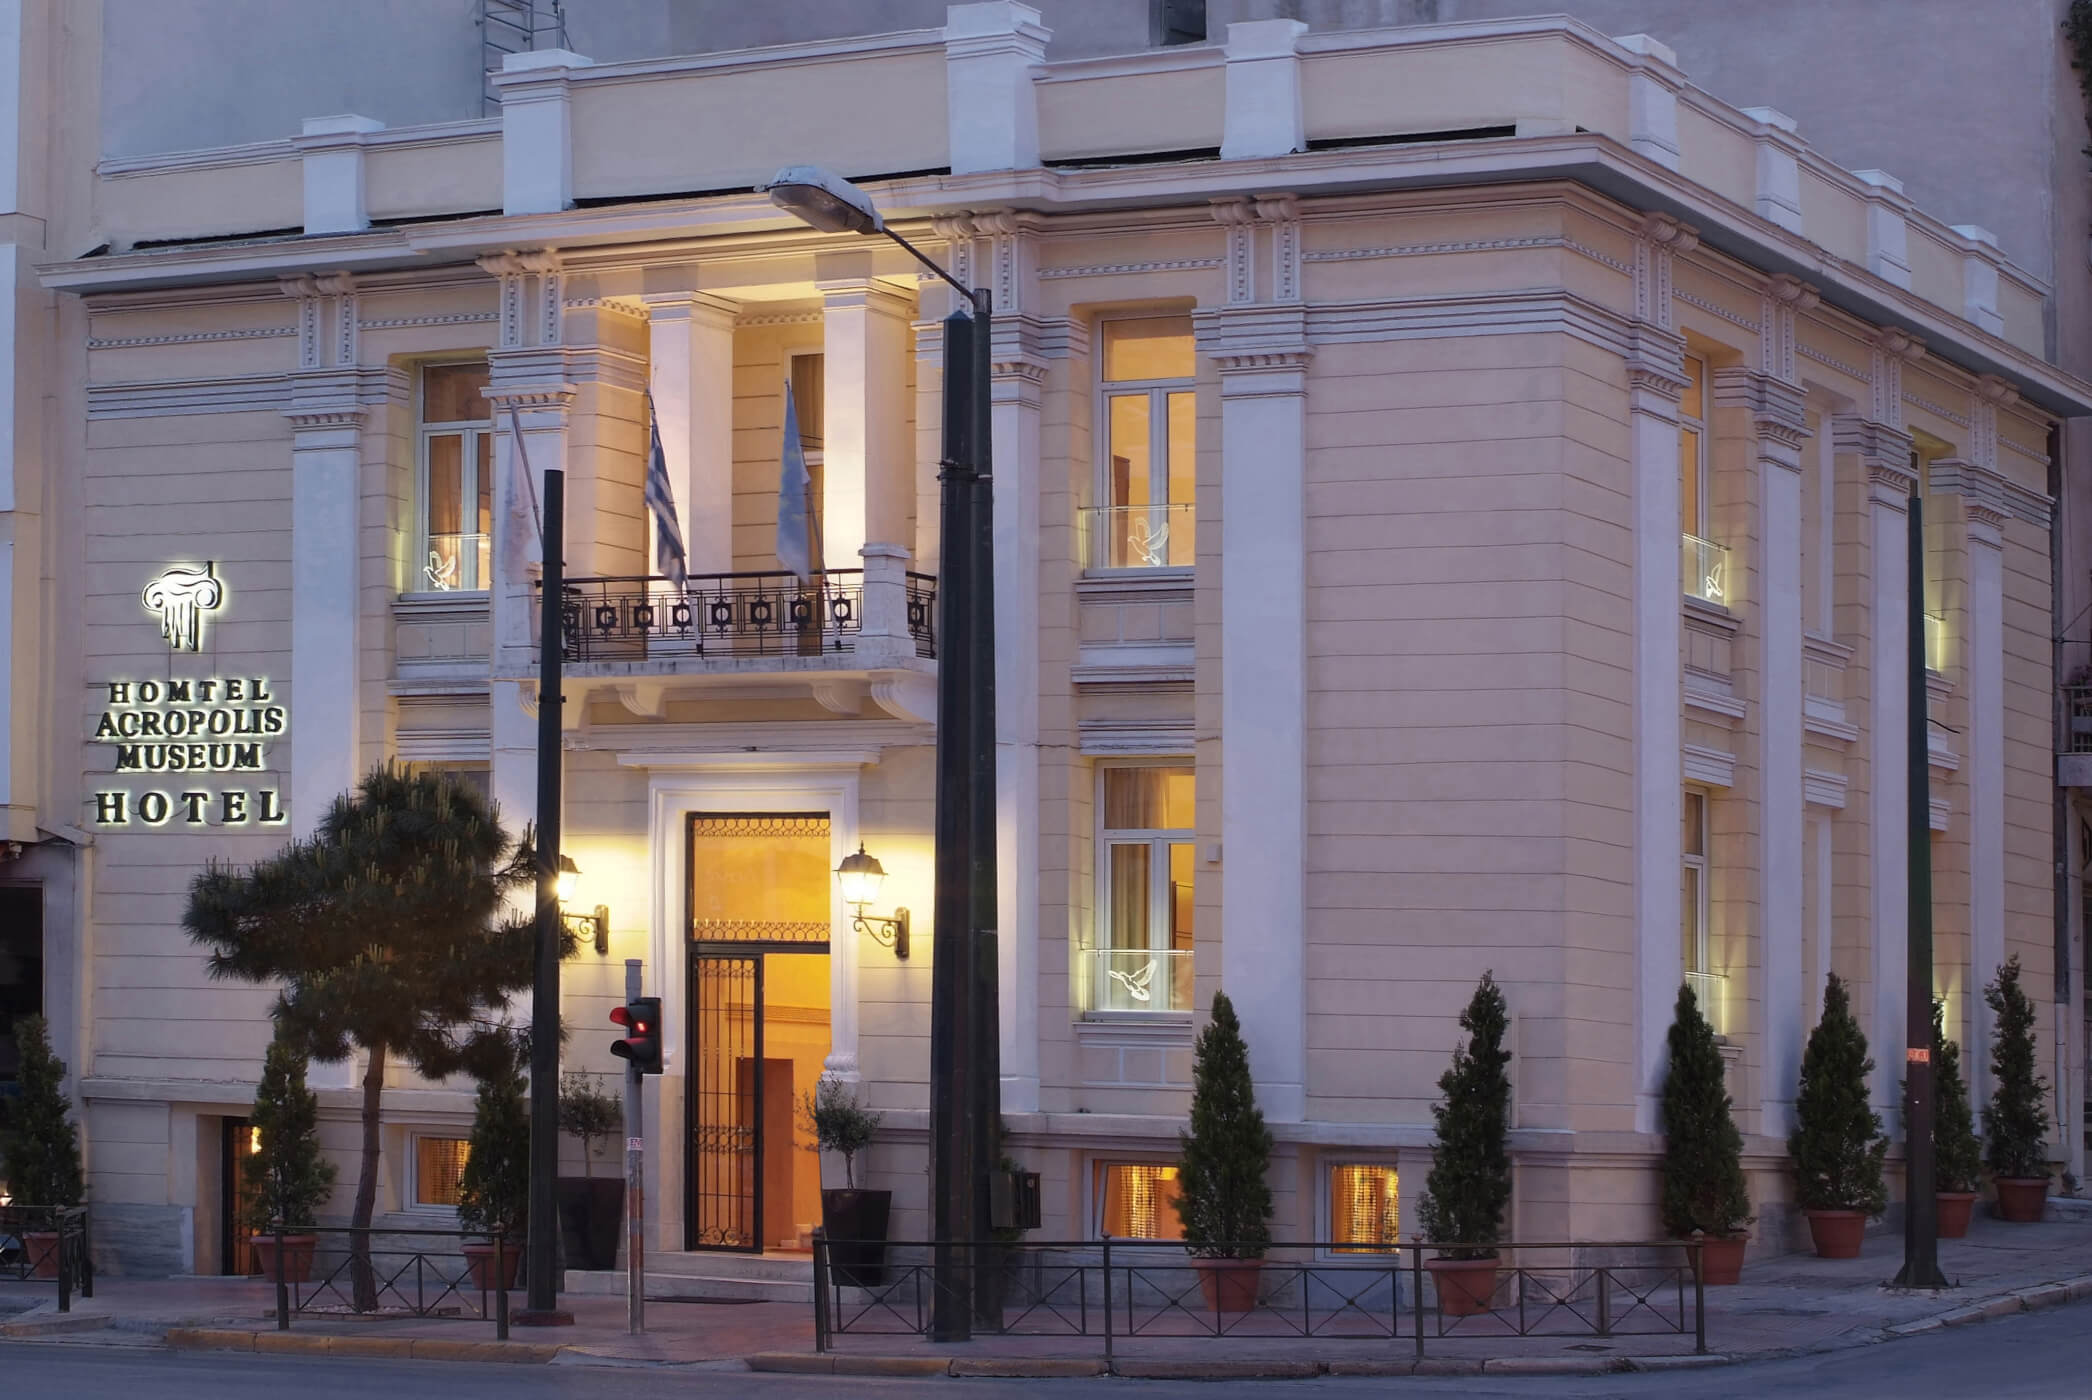 Acropolis museum boutique hotel hotels in athens for Boutiques hotels